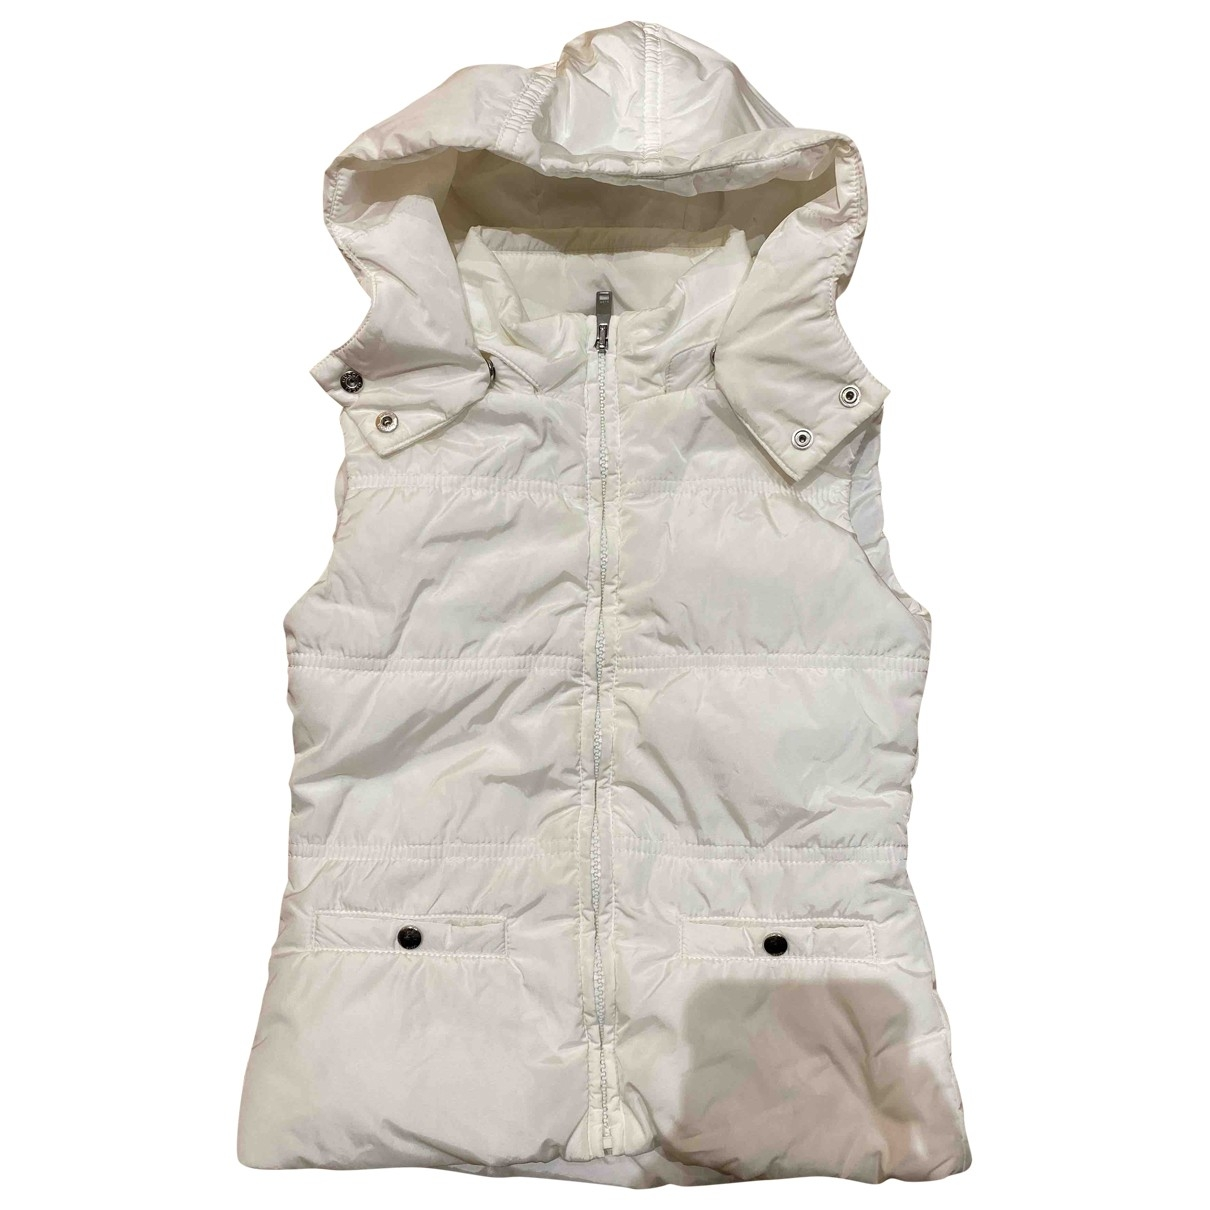 Gucci \N White jacket & coat for Kids 4 years - up to 102cm FR